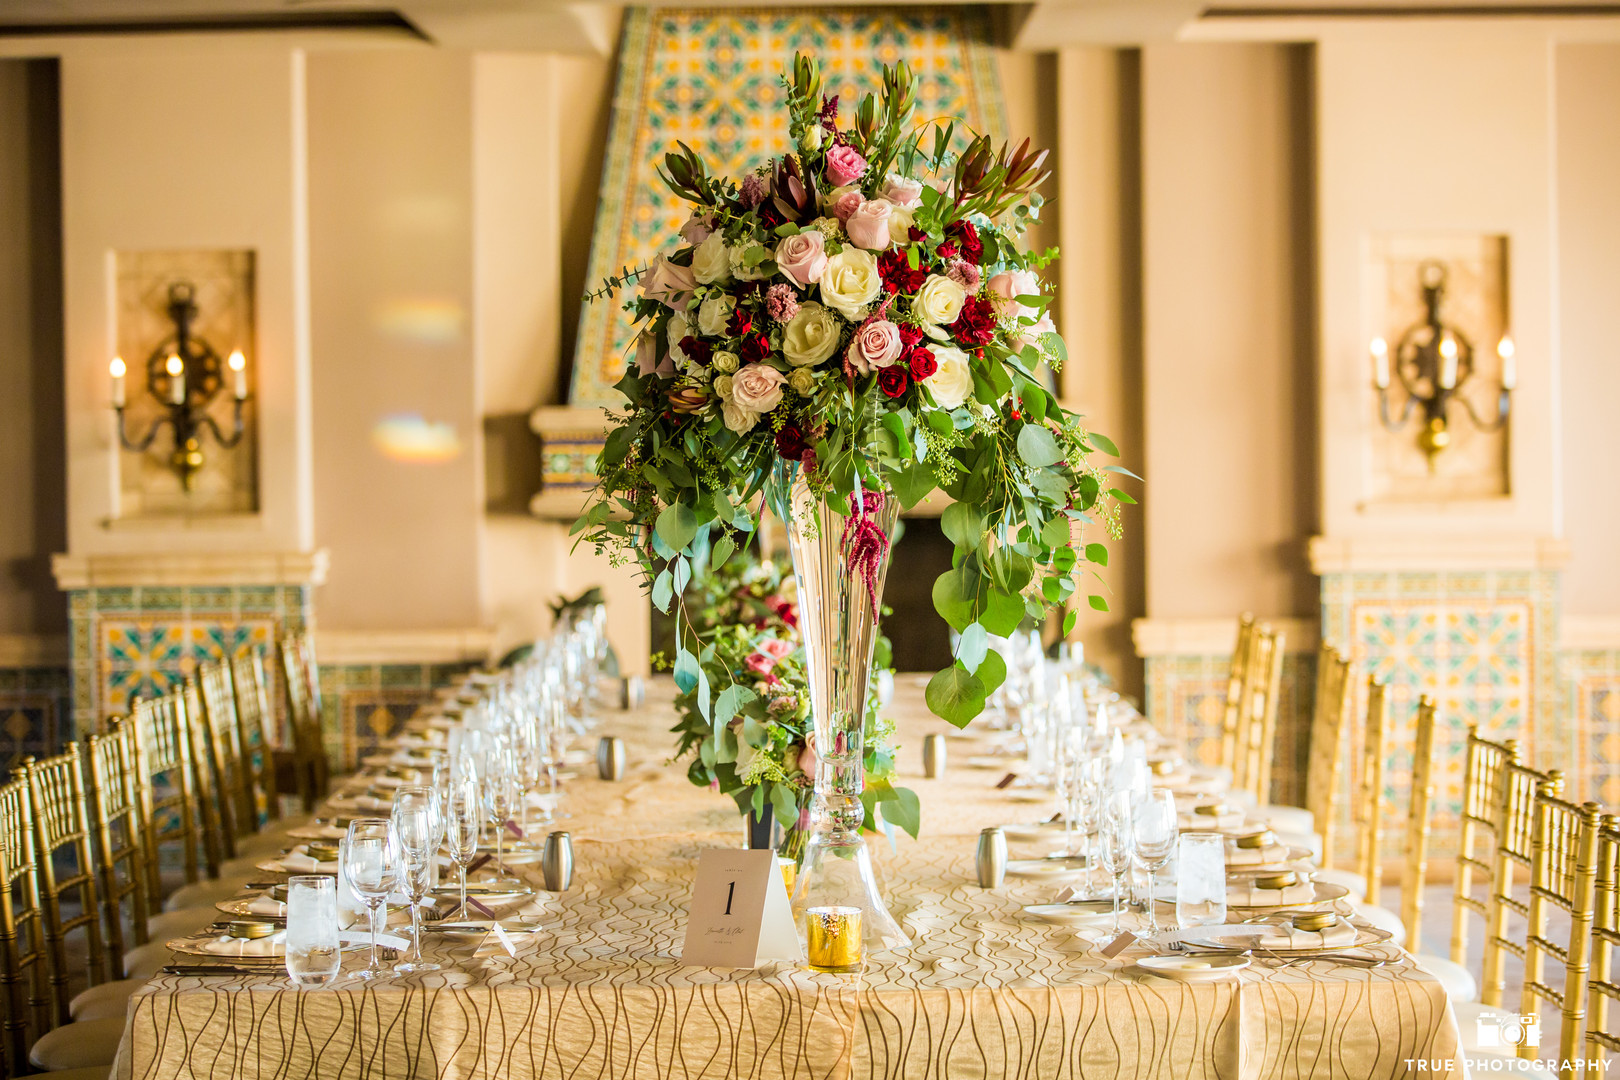 Opulent centerpiece in tall glass vases